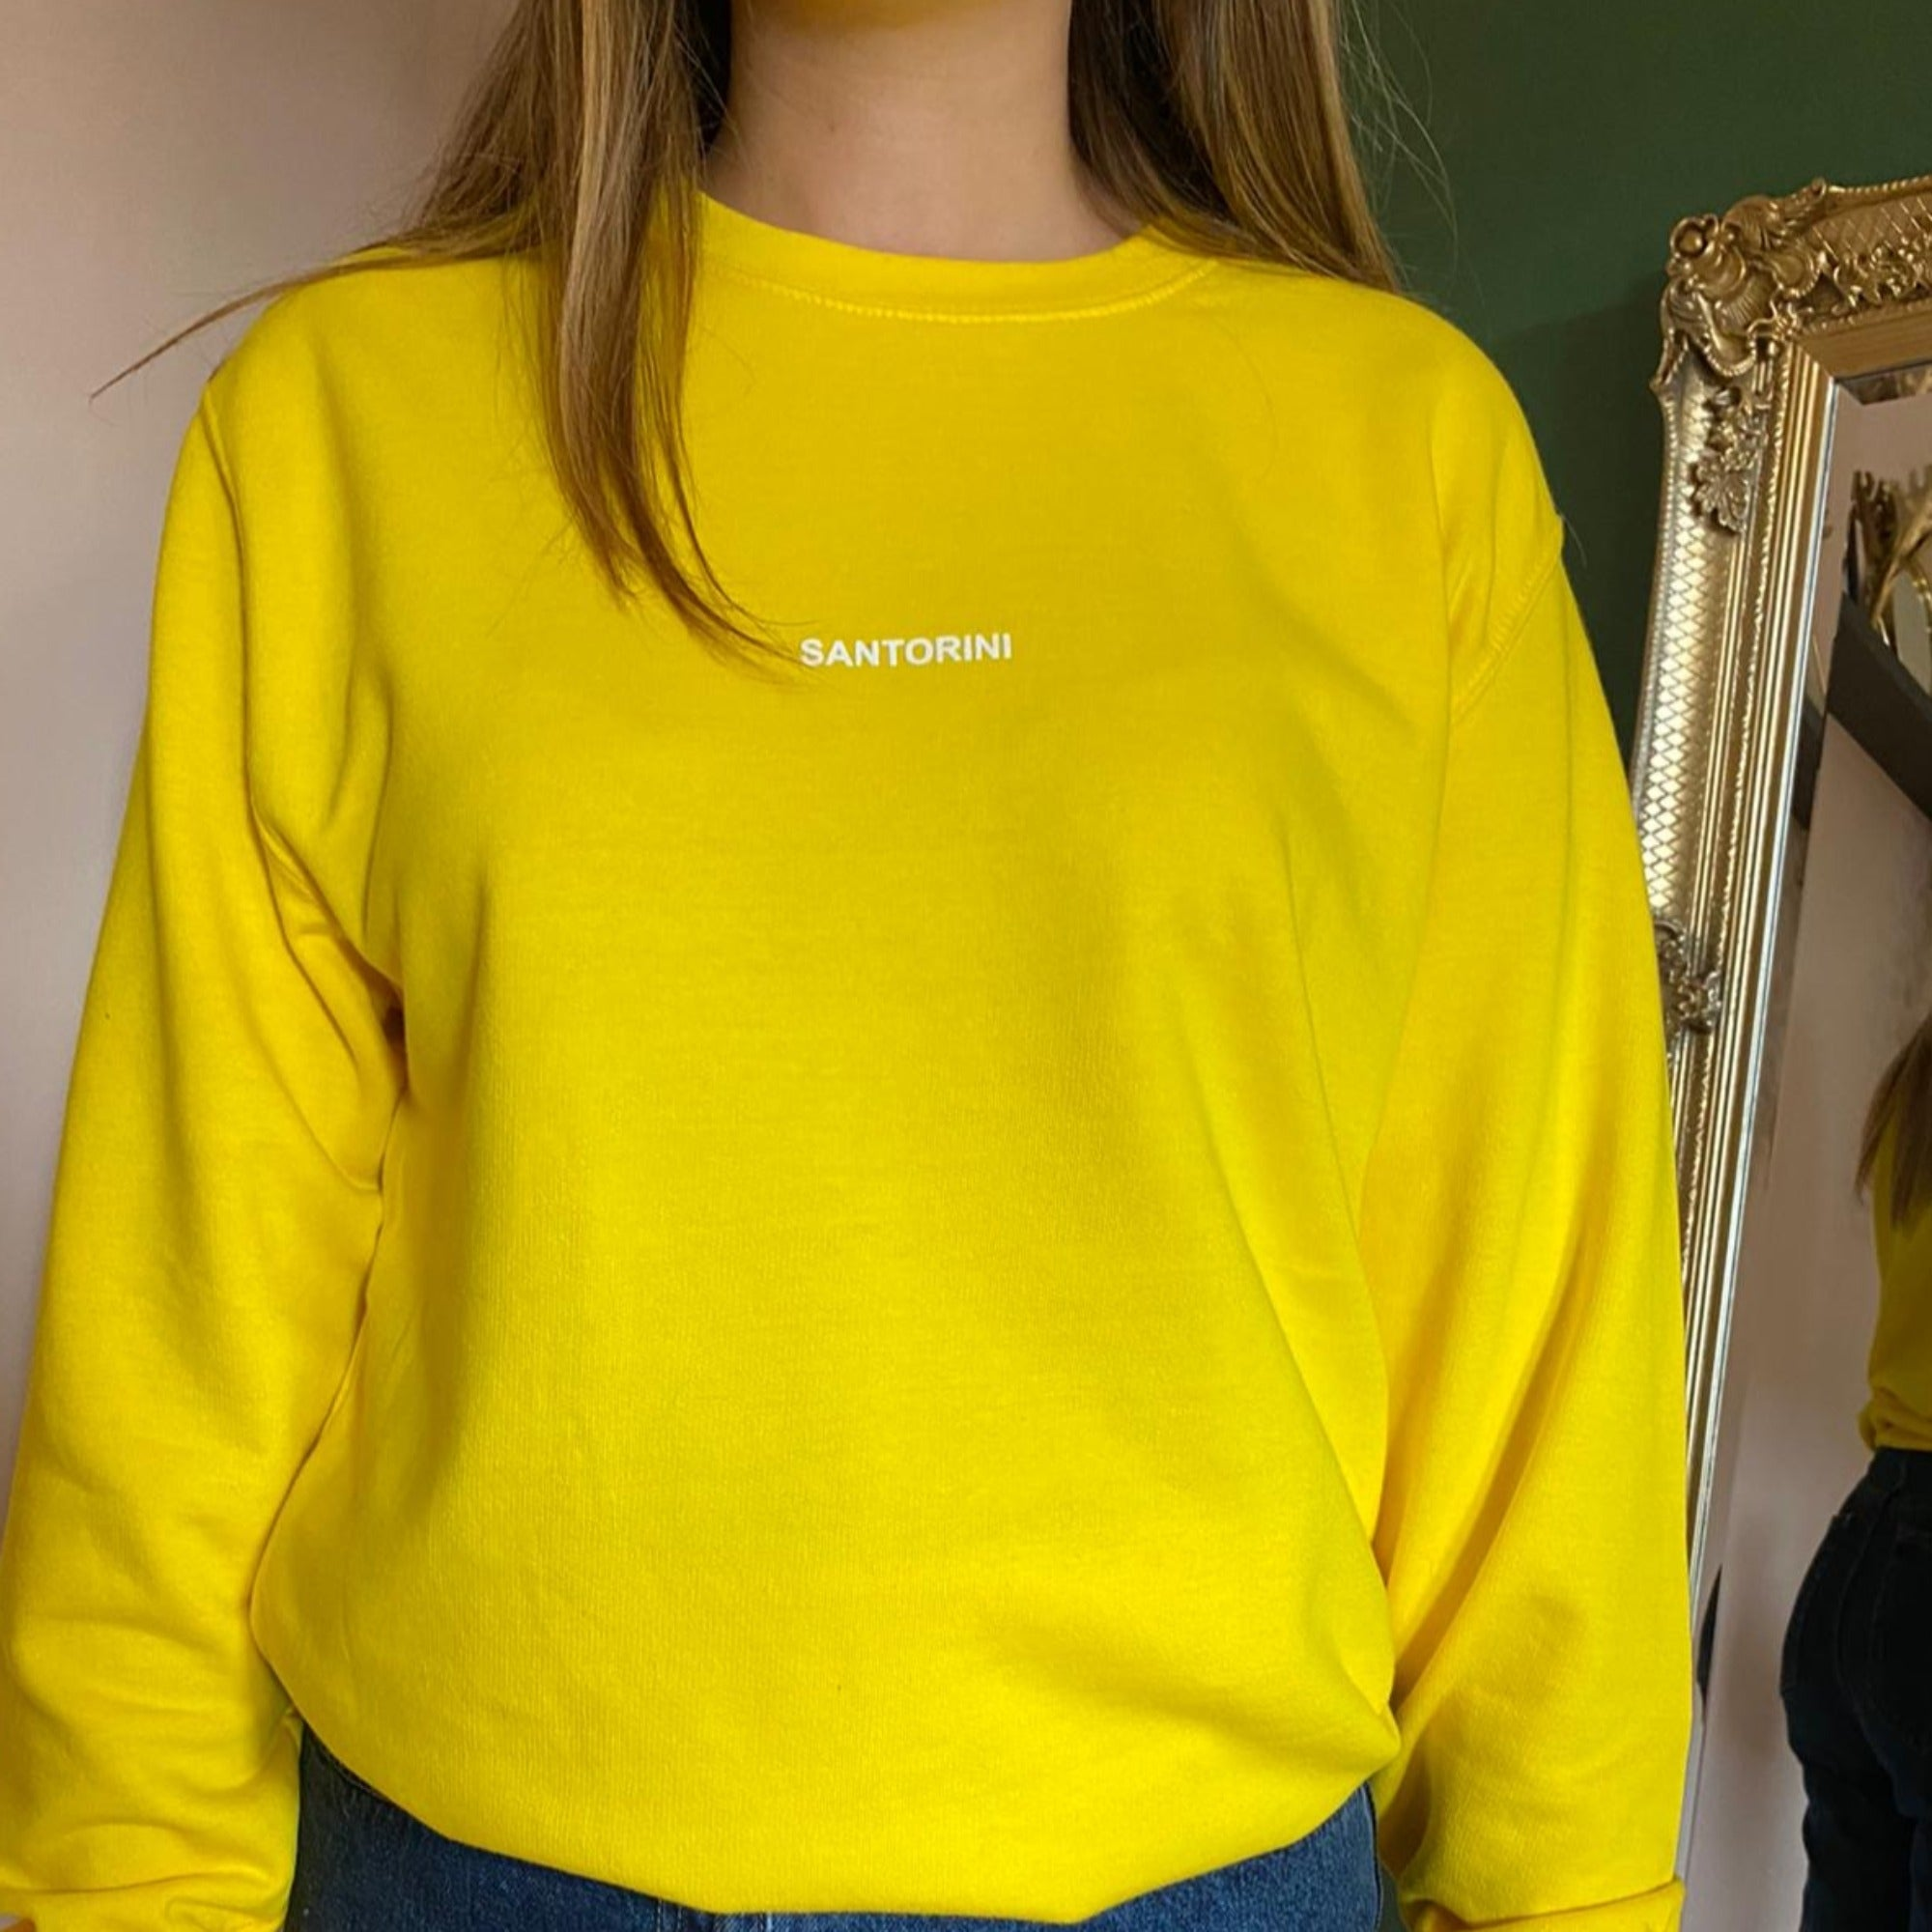 OVERSIZED SANTORINI SWEATSHIRT IN YELLOW